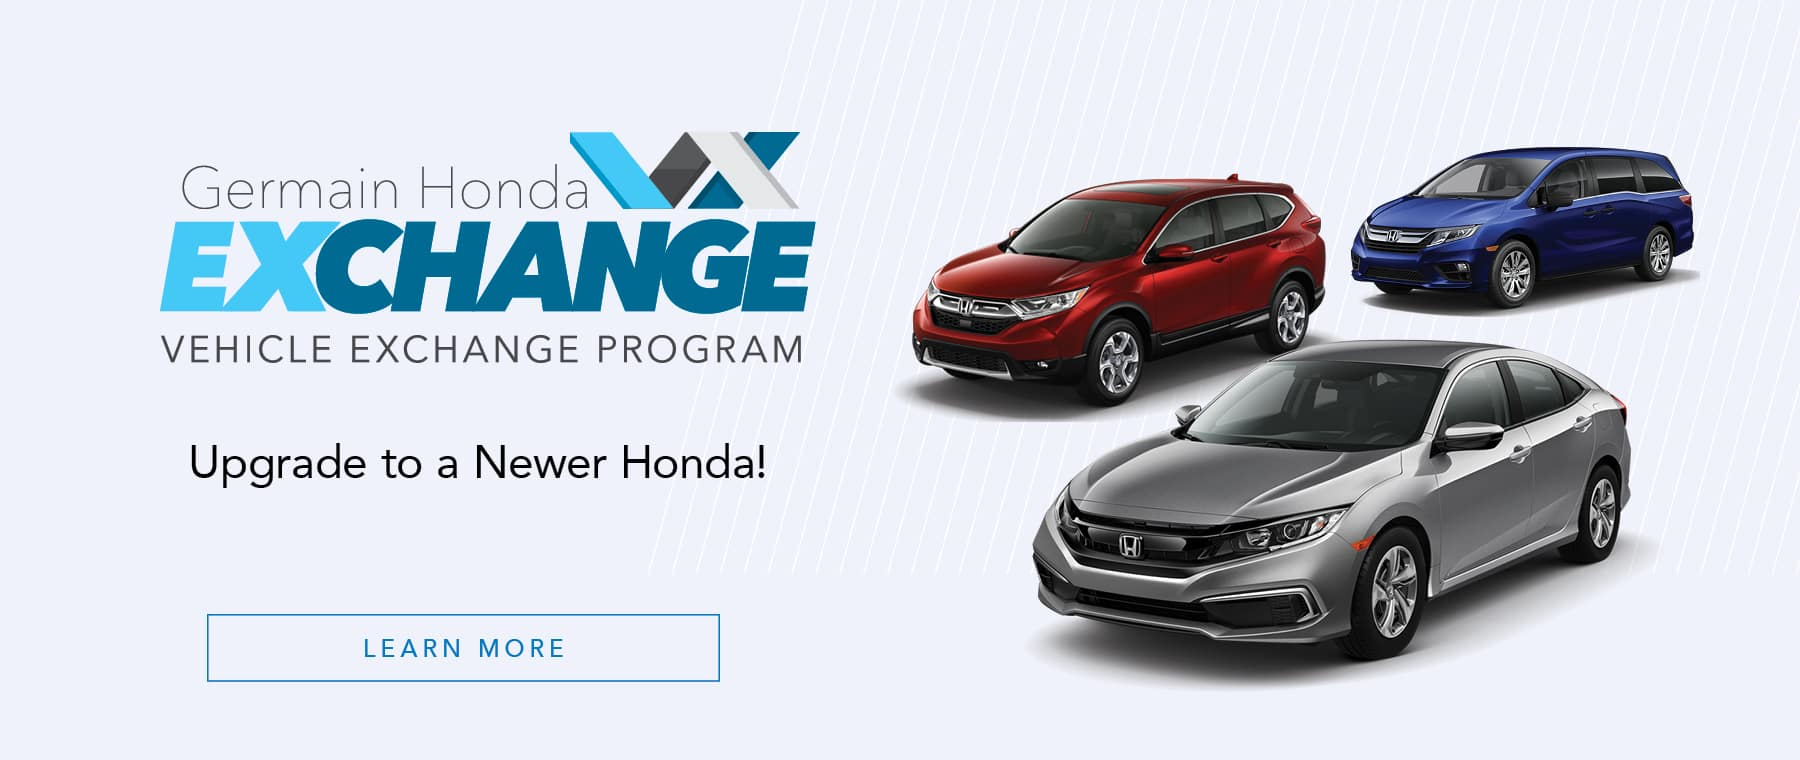 Germain Honda Service >> Honda Dealers Dayton Ohio 2019 Deals At Germain Honda Of